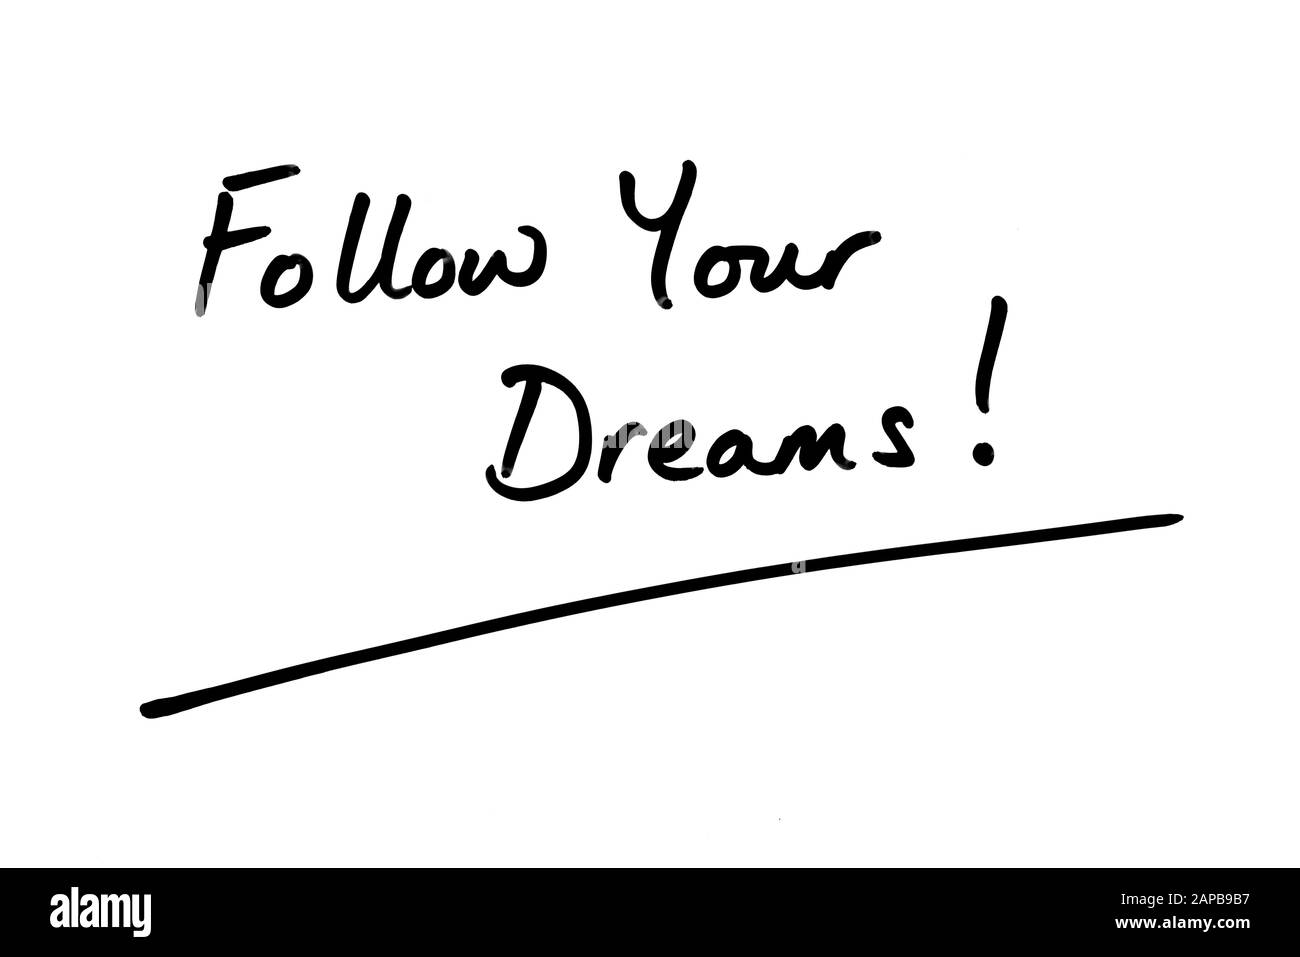 Follow Your Dreams! handwritten on a white background. Stock Photo